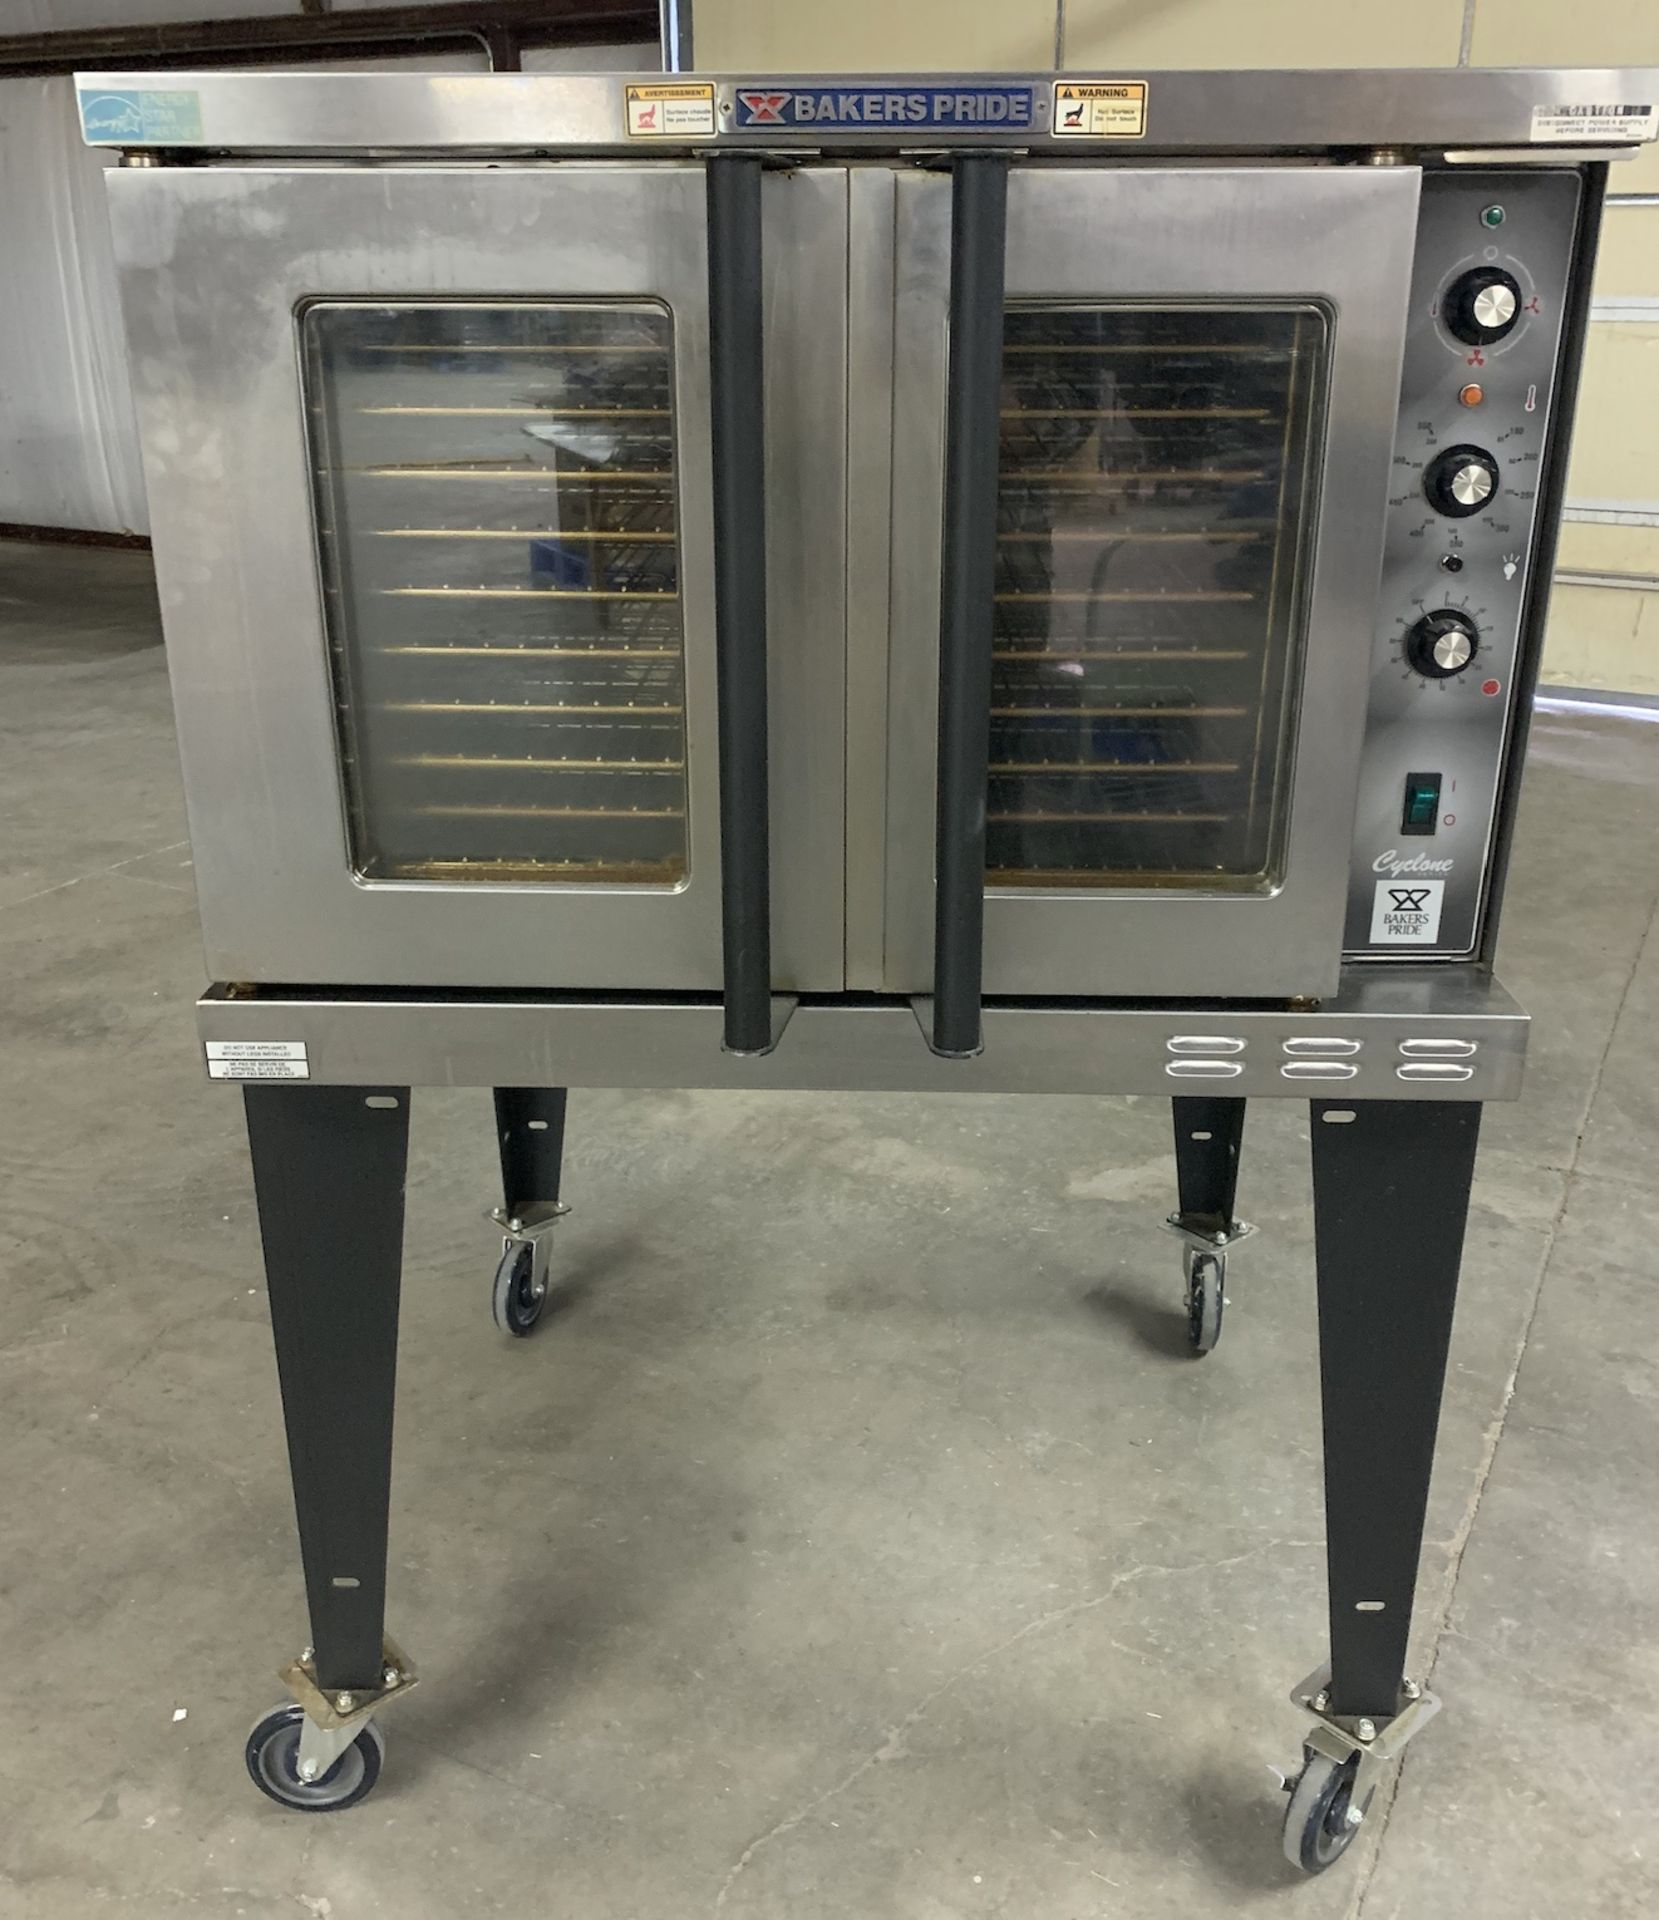 Used Bakers Pride Cyclone Series Single Deck Full Size Electric Decarb Oven. Model BCO-E1w/ 39 trays - Image 3 of 8